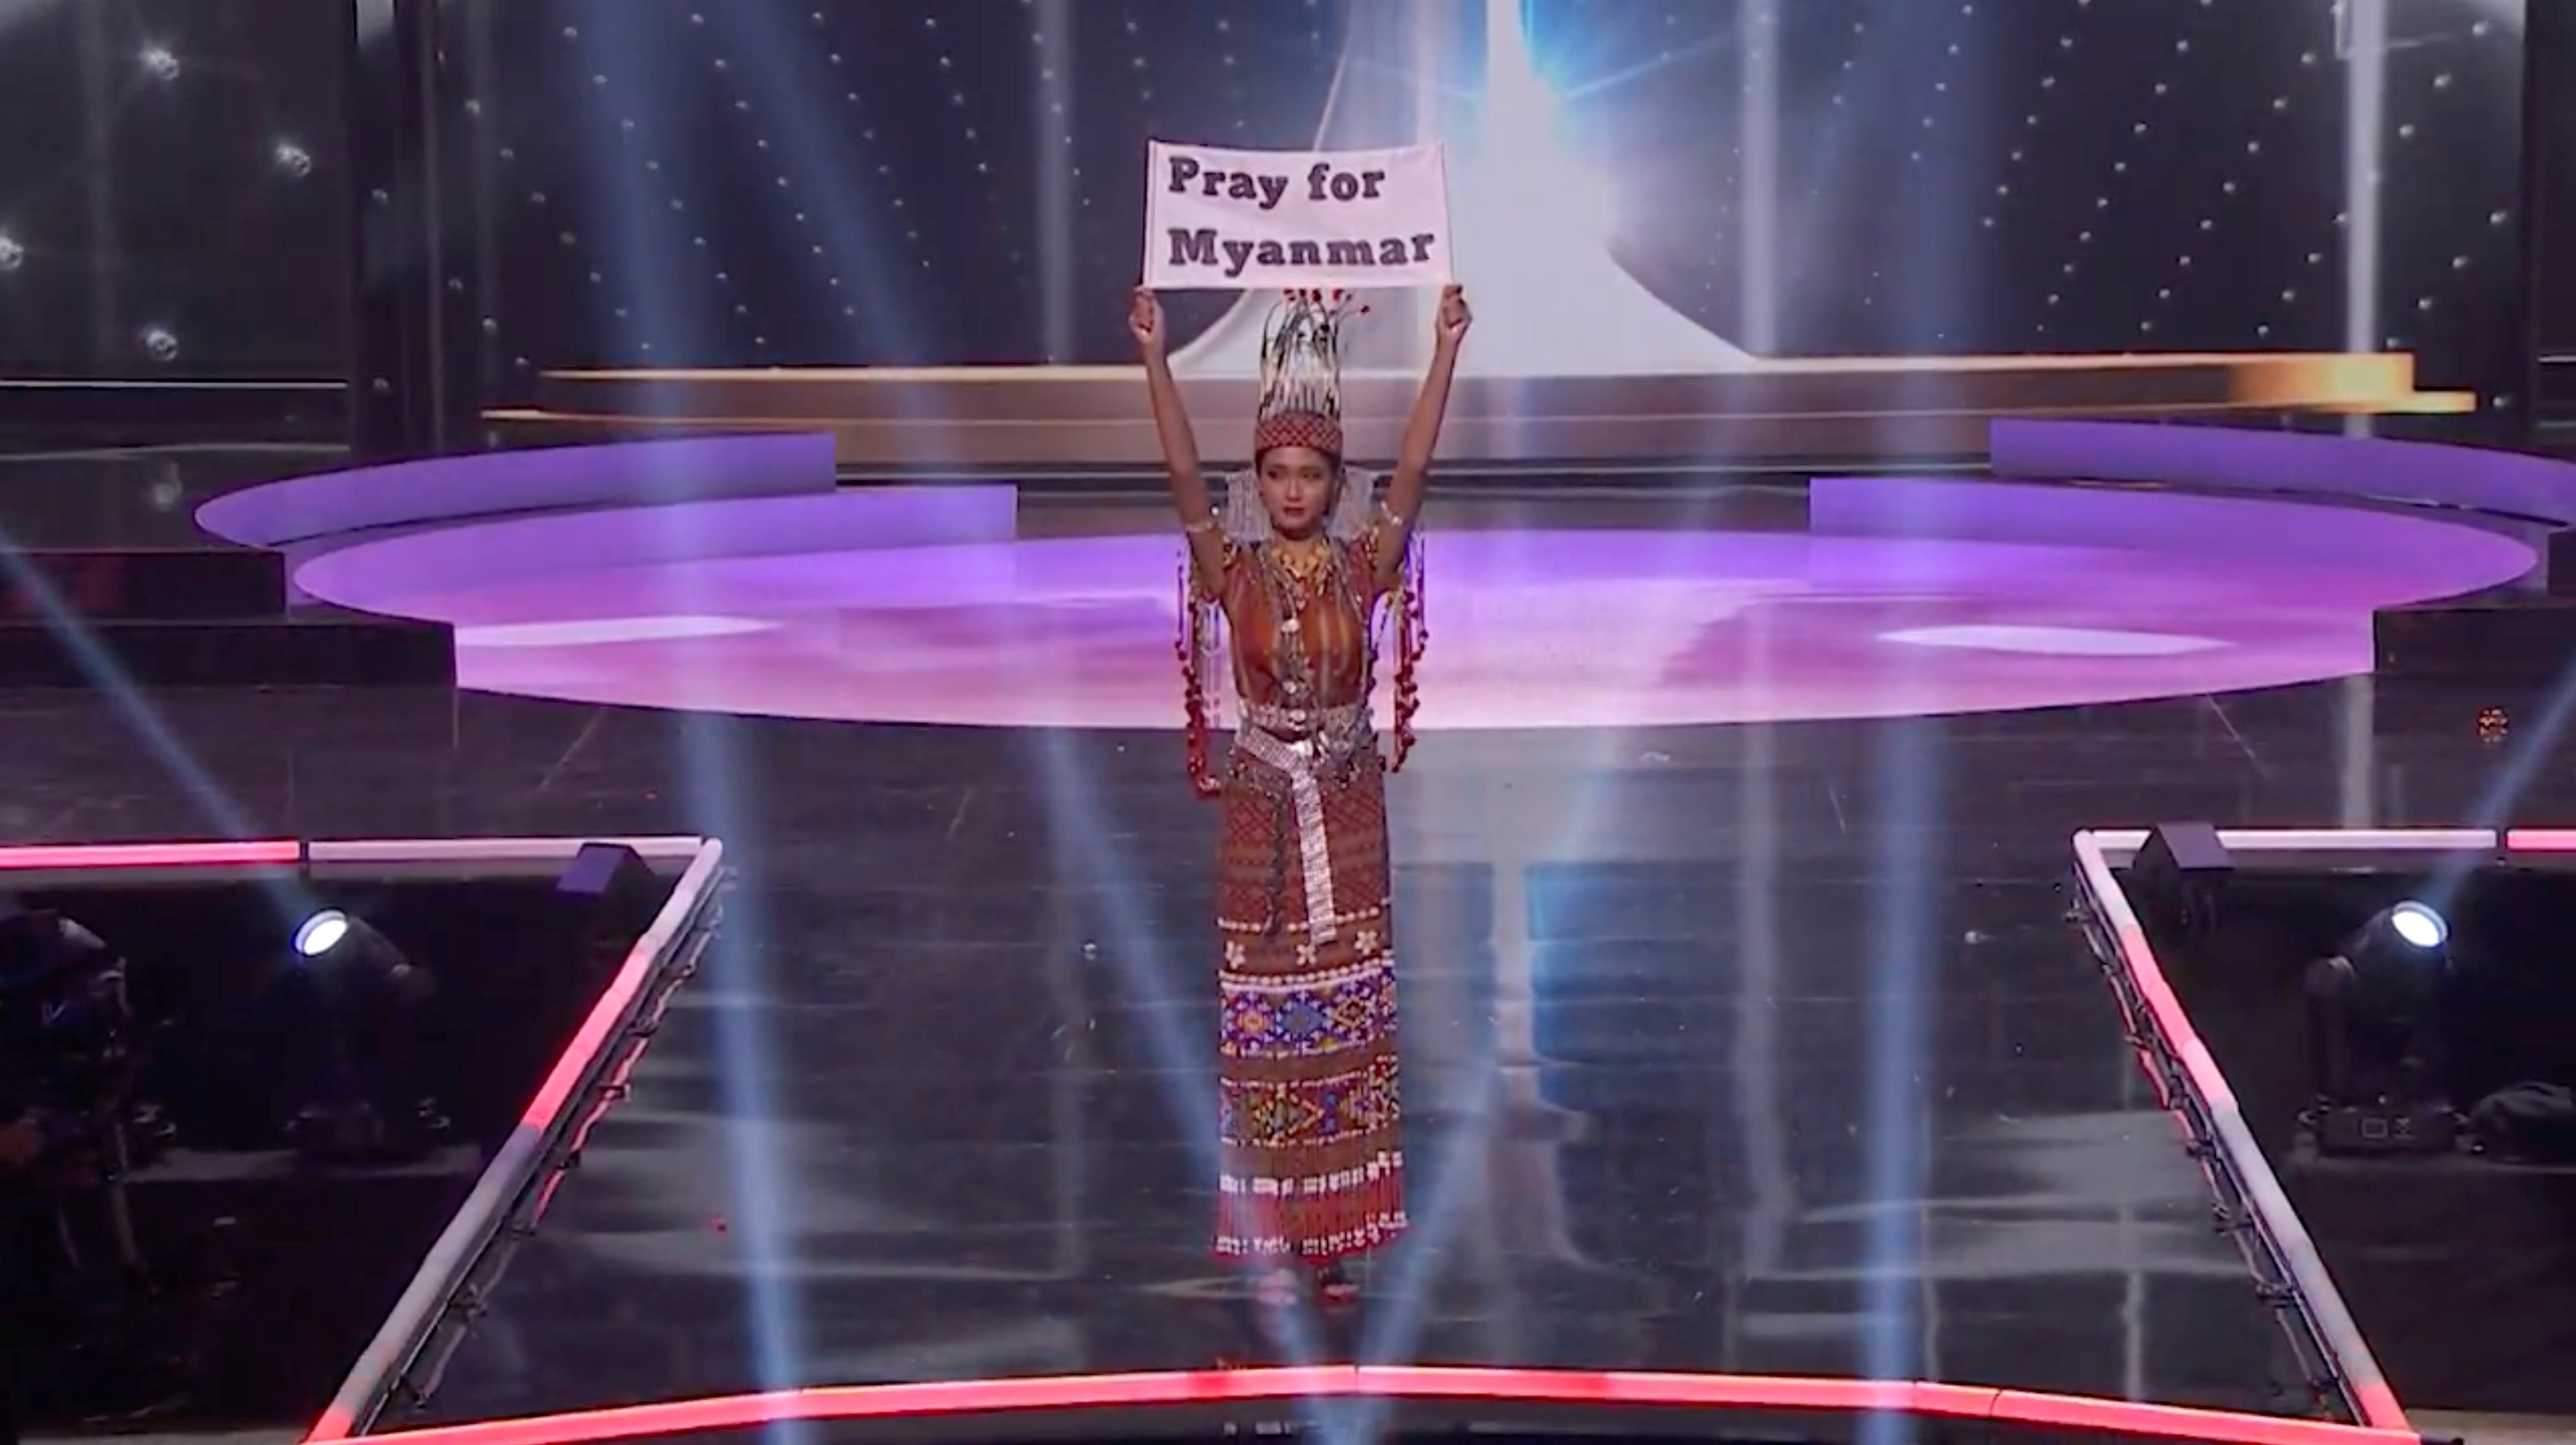 Ma Thuzar Wint Lwin, Miss Universe Myanmar, holds up the